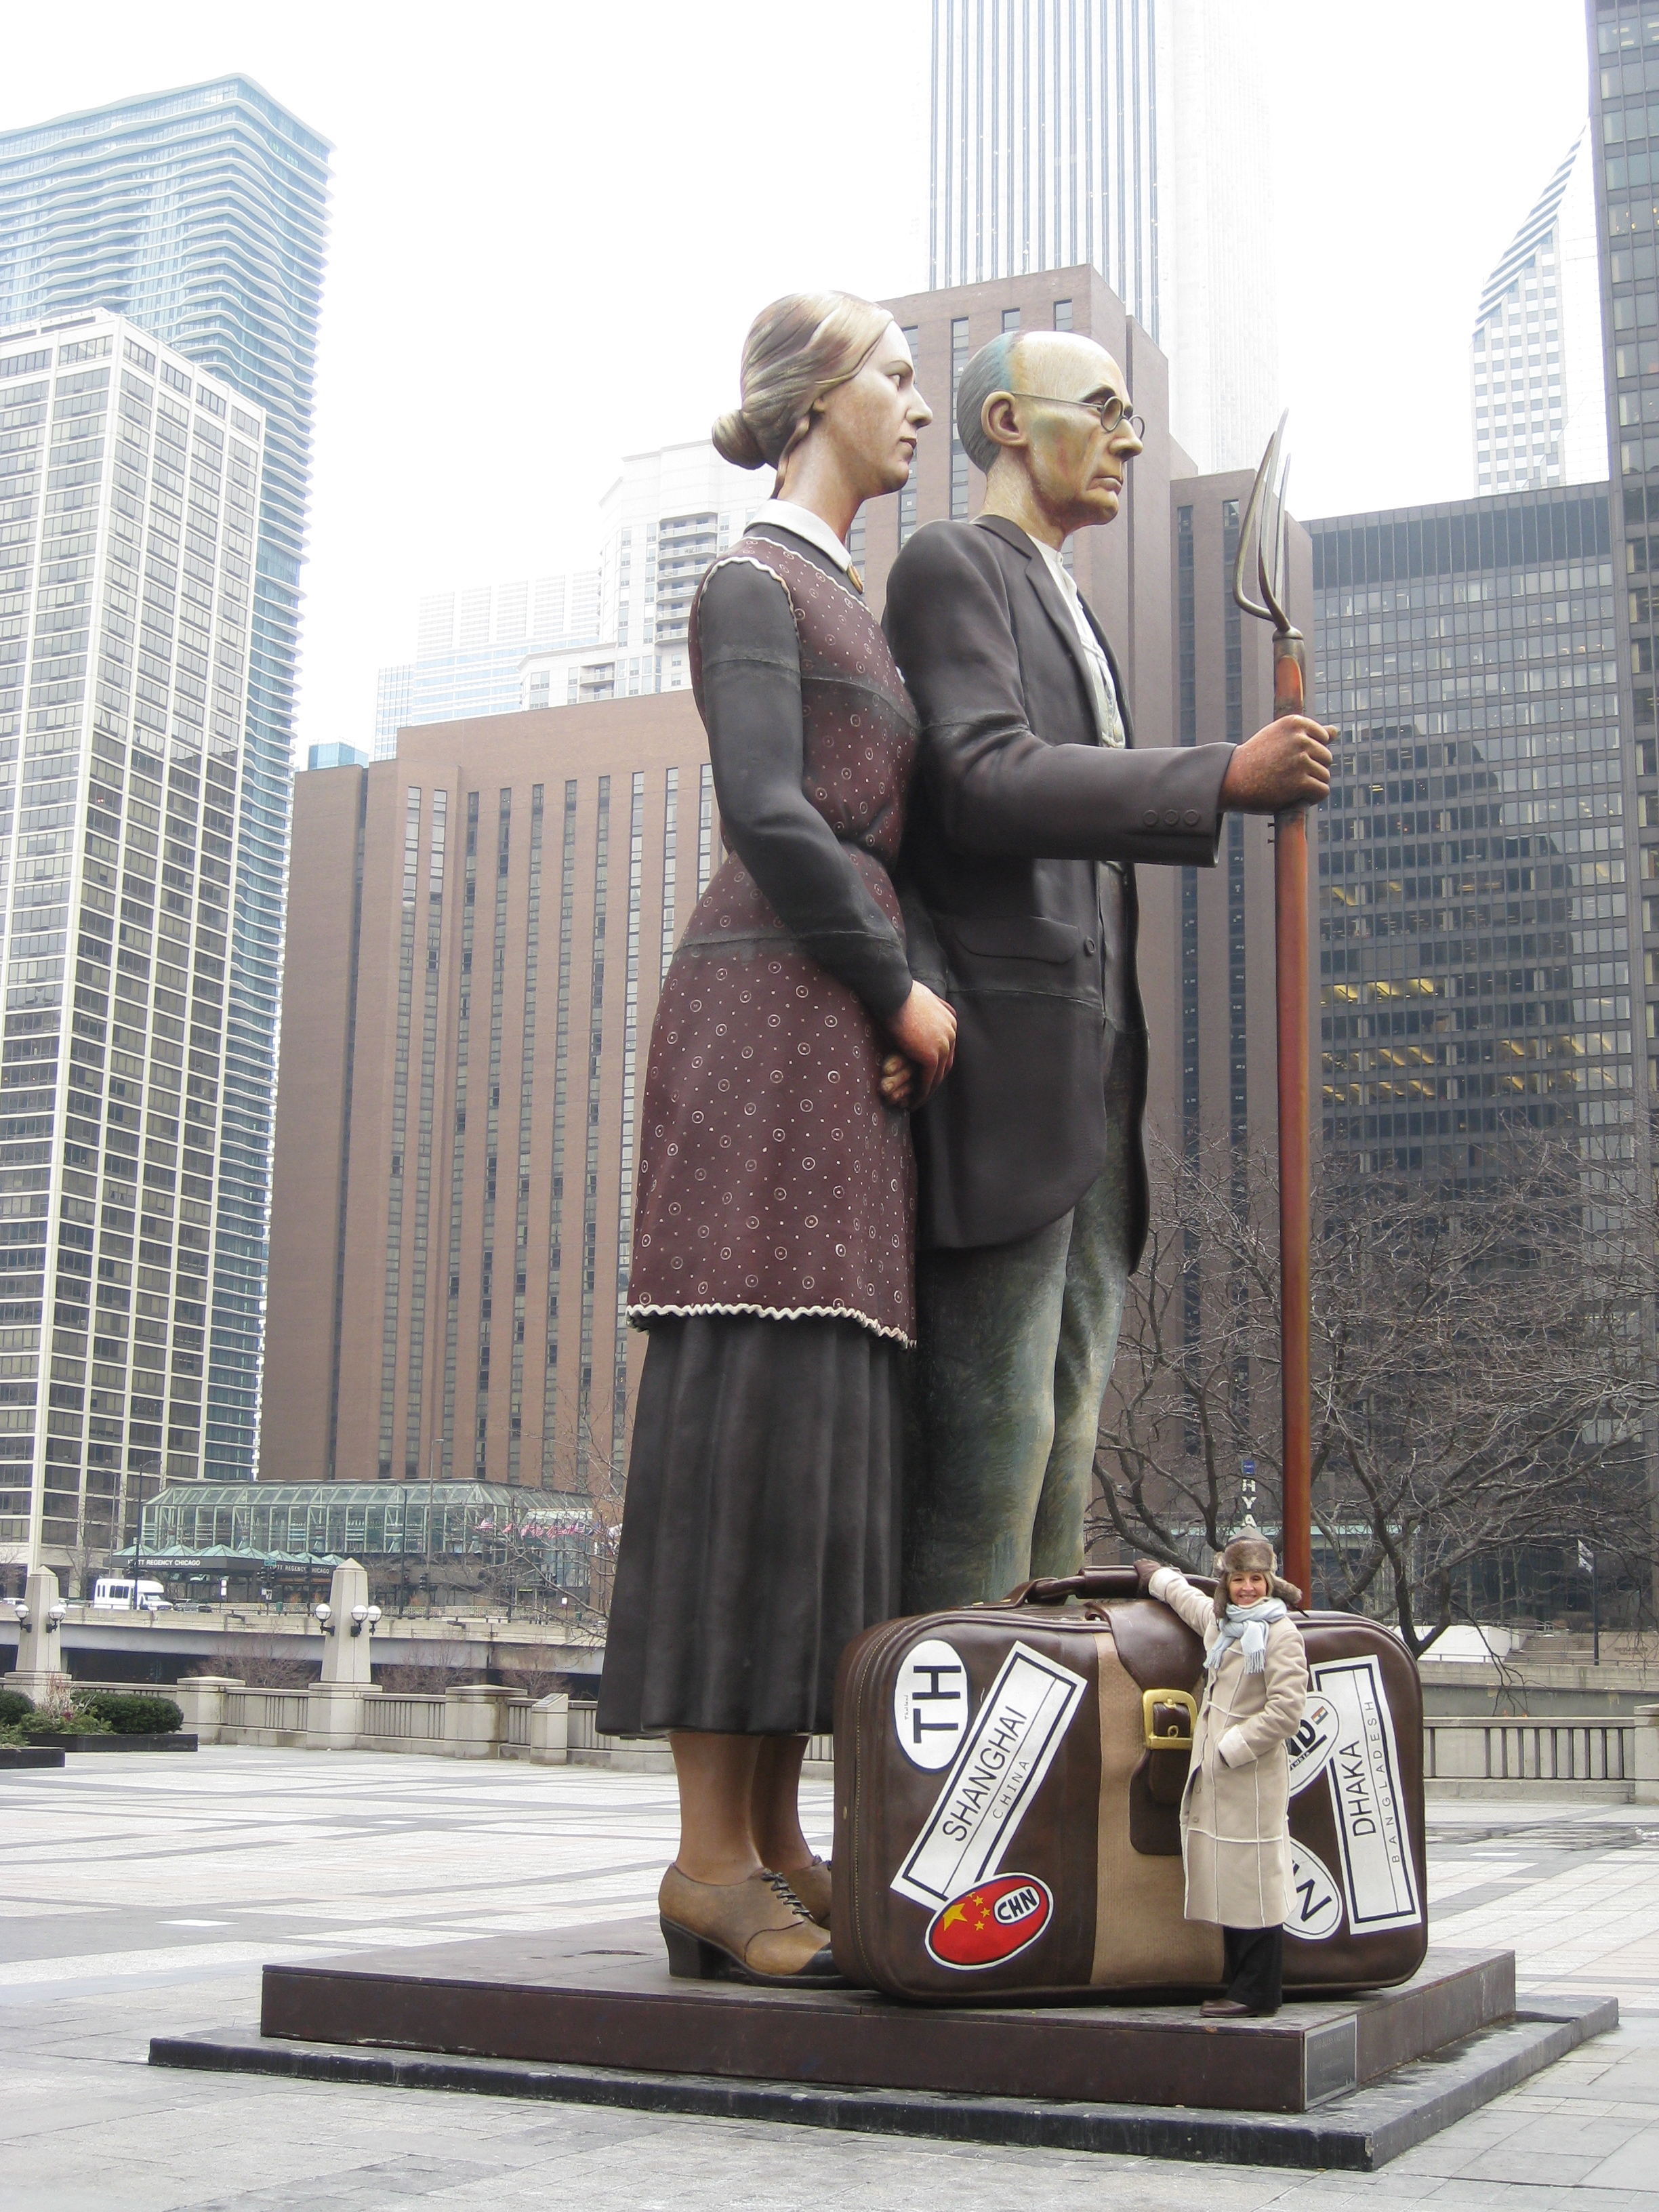 GRANT WOOD'S AMERICAN GOTHIC IN CHICAGO